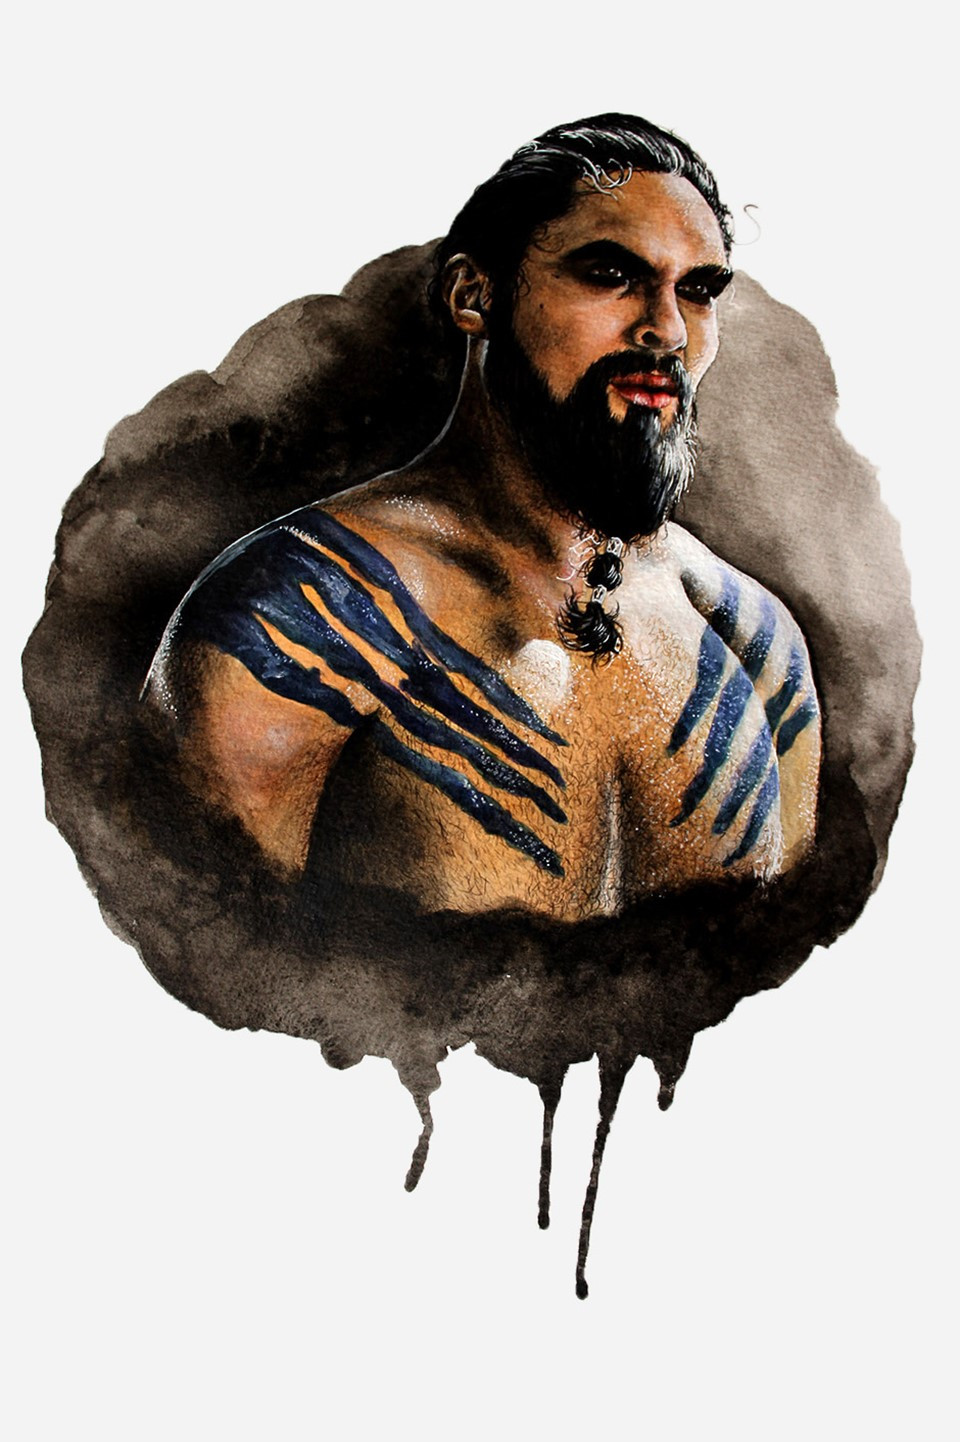 Khal Drogo fan art by Holly Khraibani